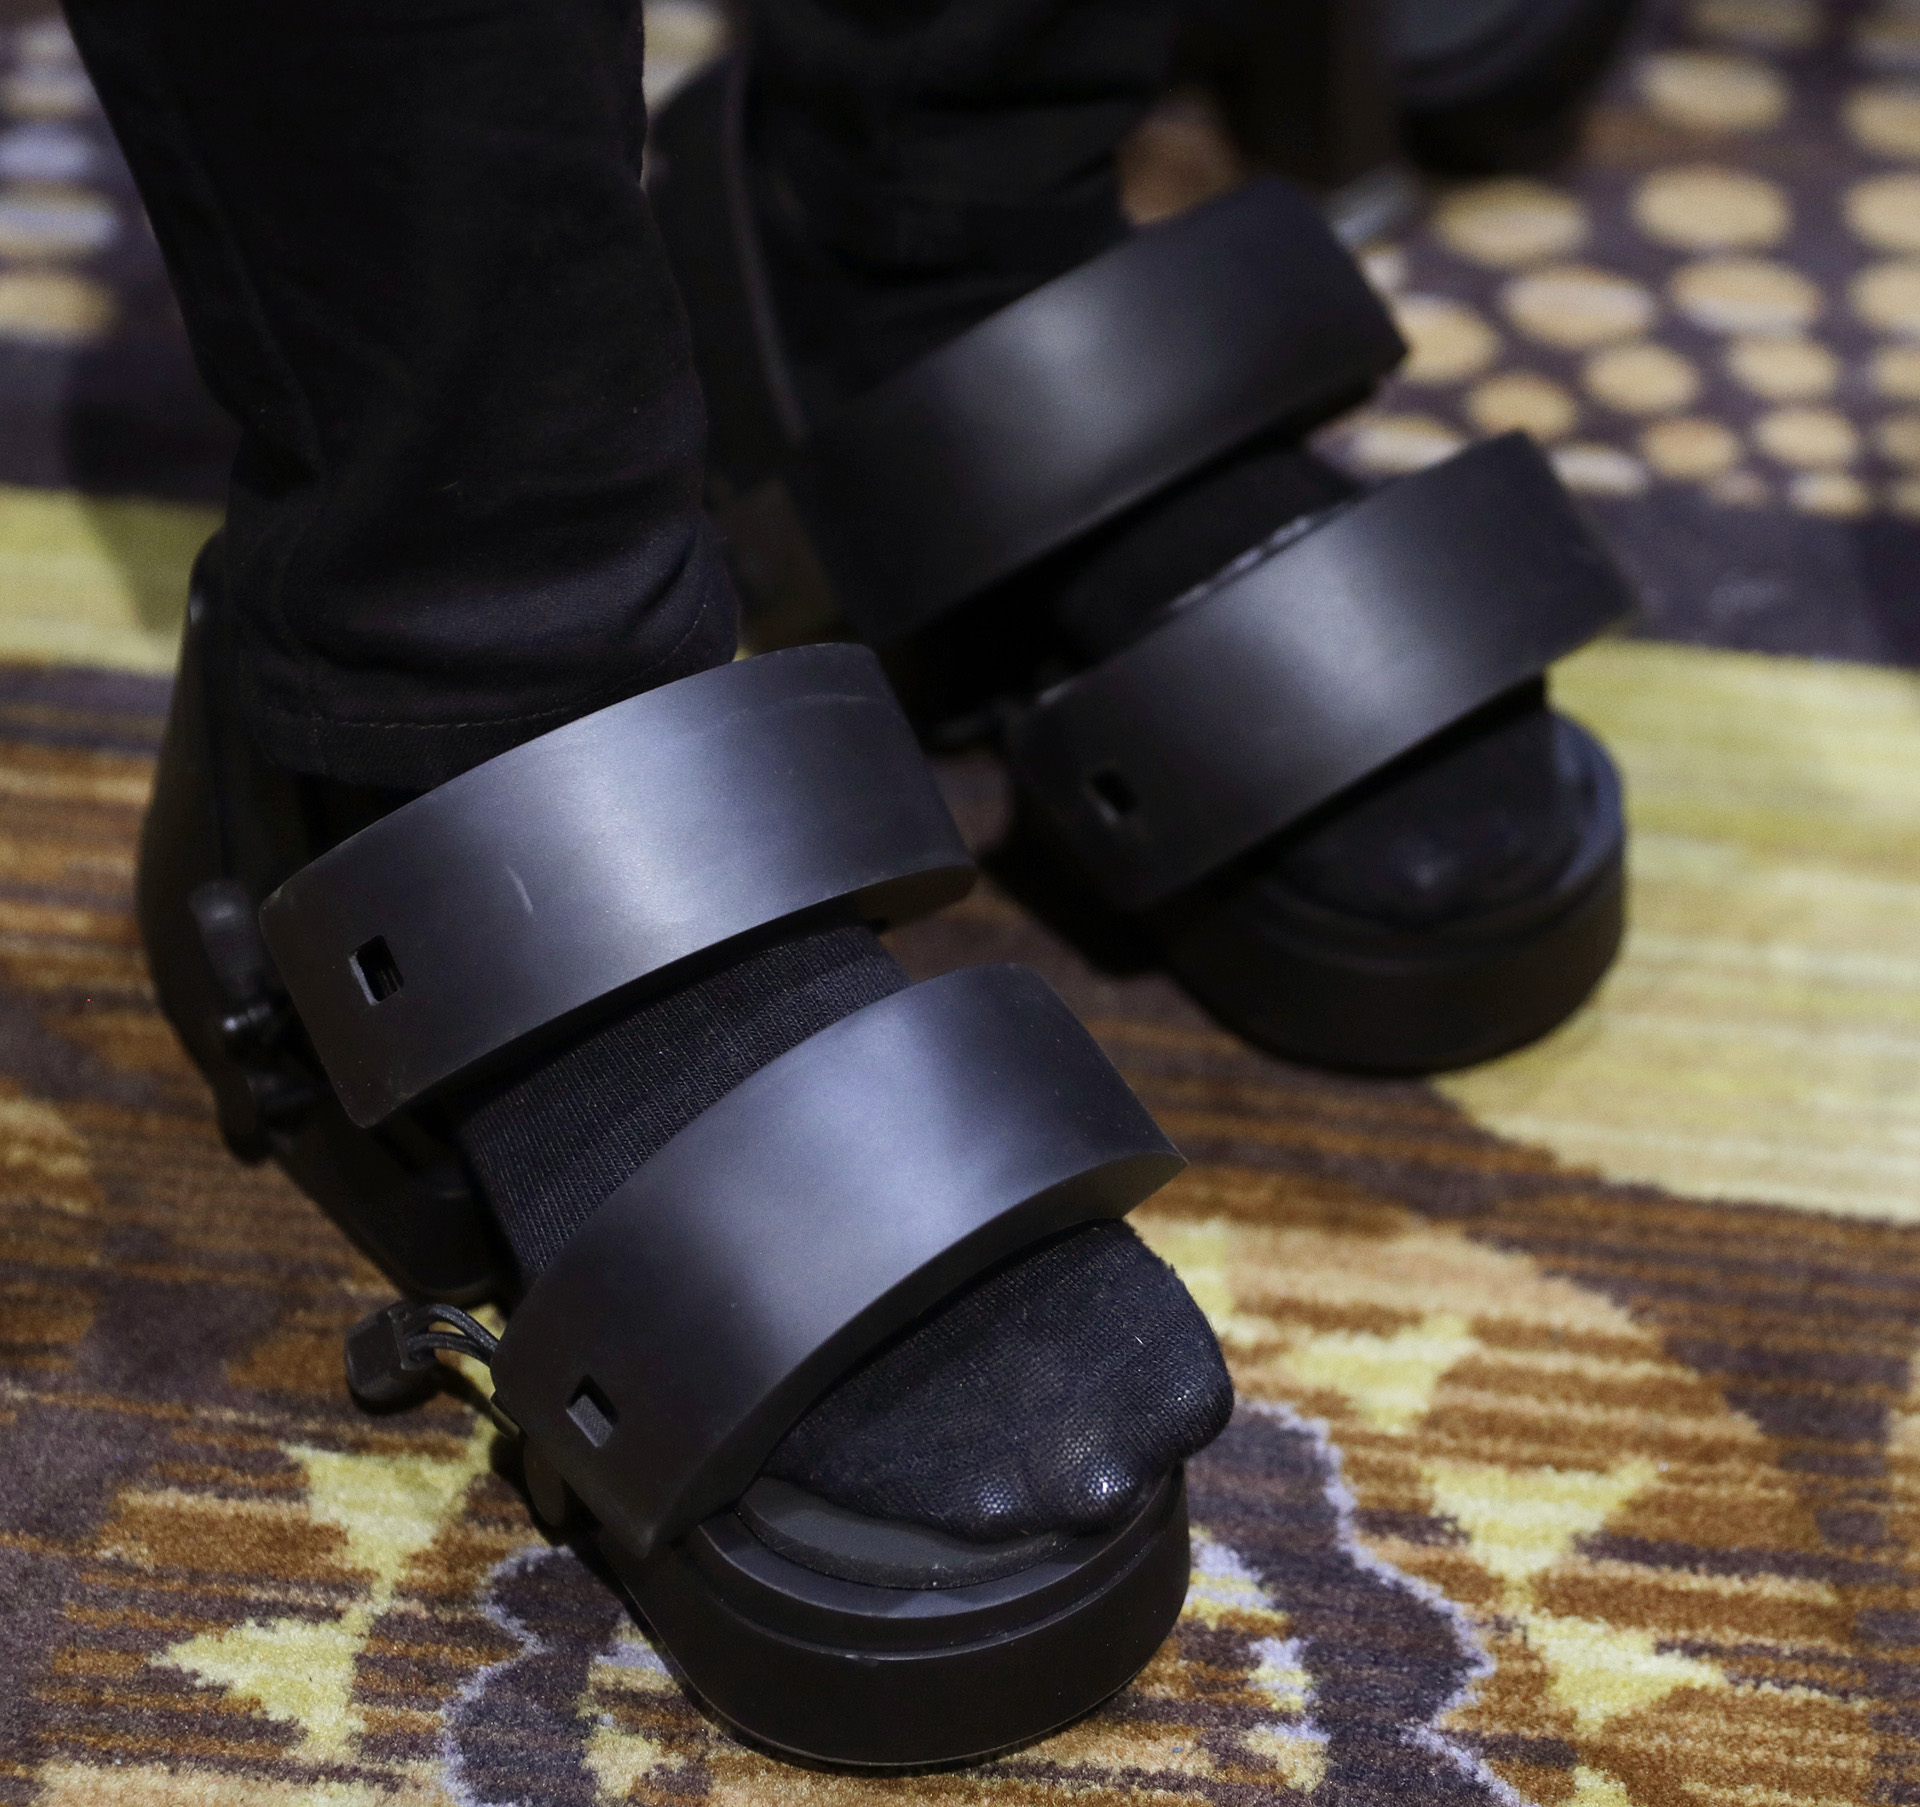 Zapatos de realidad virtual Taclim de Cerevo que permite experimentar diferentes superficies de forma digital (AP Photo/John Locher)